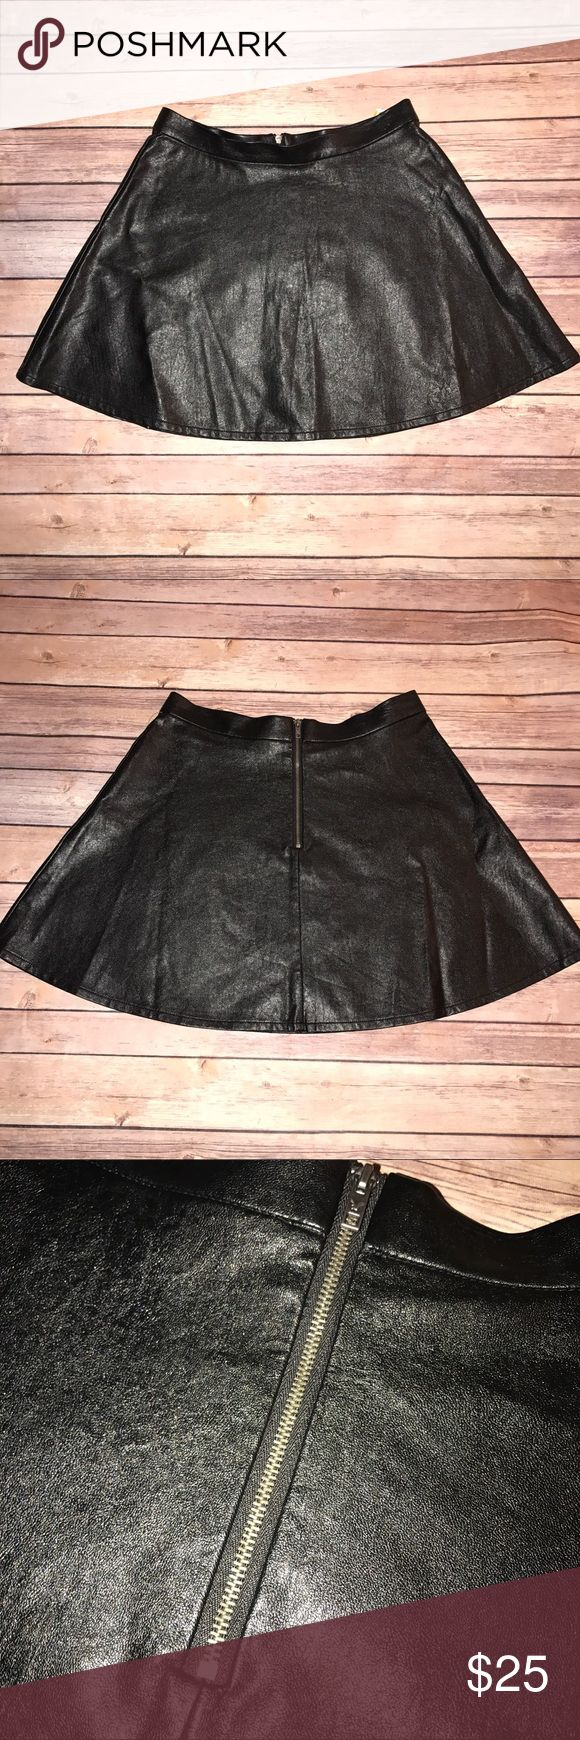 American Eagle Outfitters Leather Skater Skirt Faux leather, black. New without tags. American Eagle Outfitters Skirts Circle & Skater